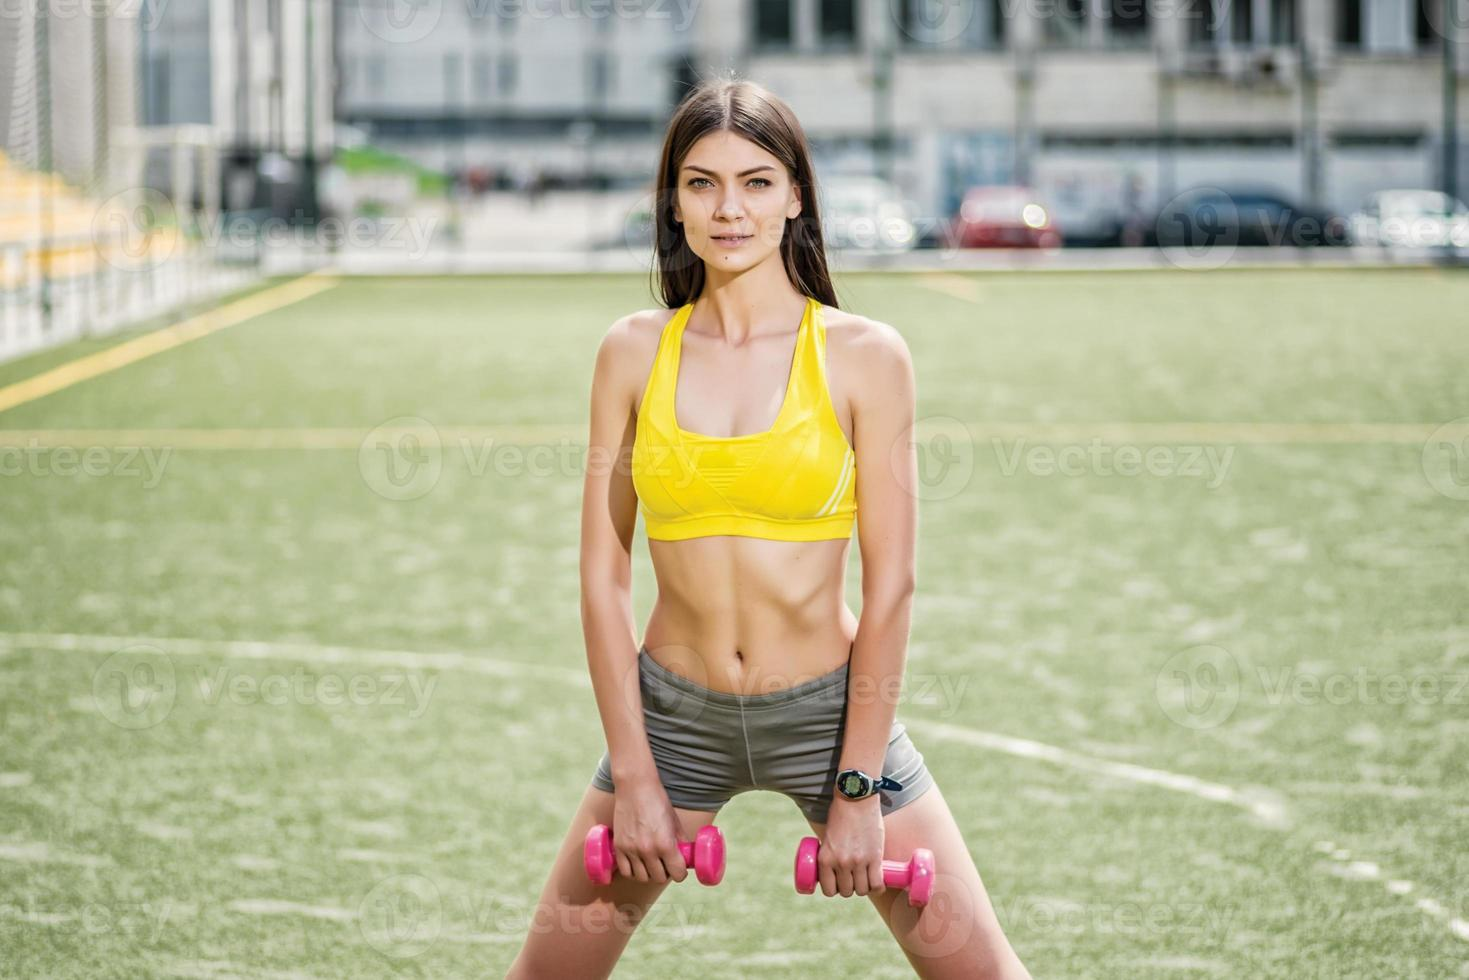 Muscle training with dumbbells. Young and slim woman trains with photo